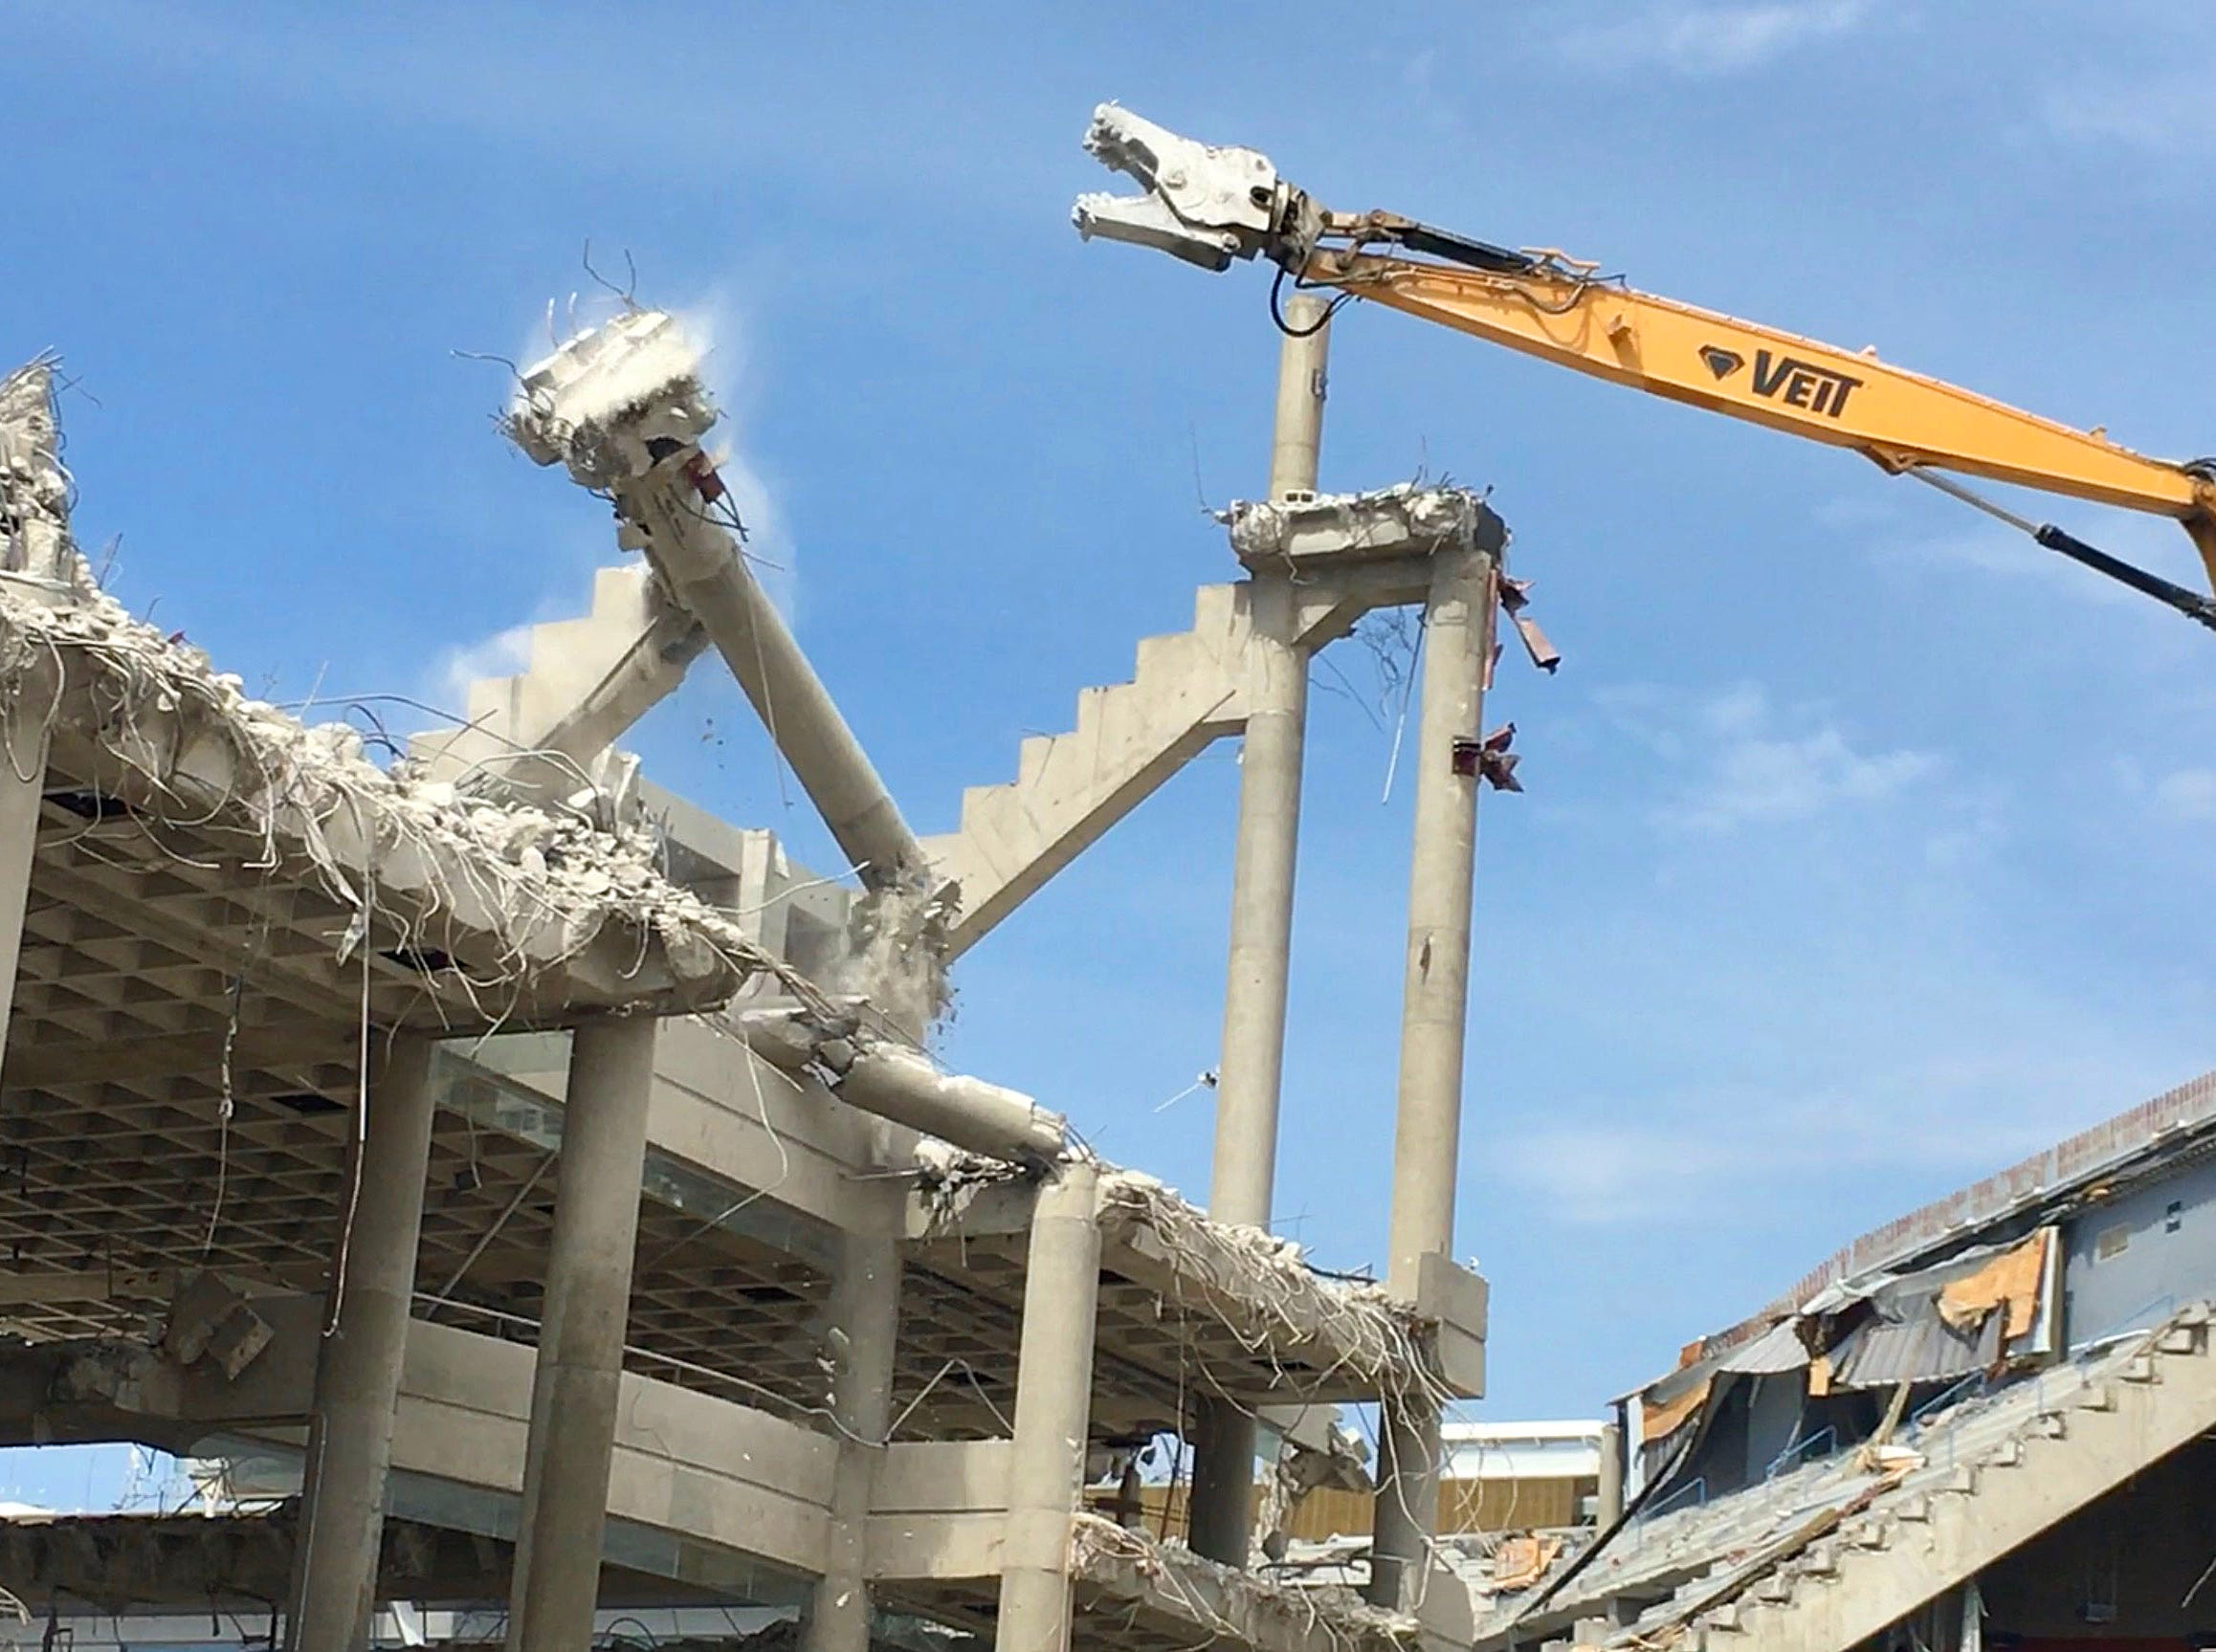 A beam from the upper bowl of the arena comes crashing down as work continues on the demolition of the BMO Harris Bradley Center in Milwaukee on Monday. The former home of the Milwaukee Bucks is being razed as the new Fiserv Forum was built just to the north.